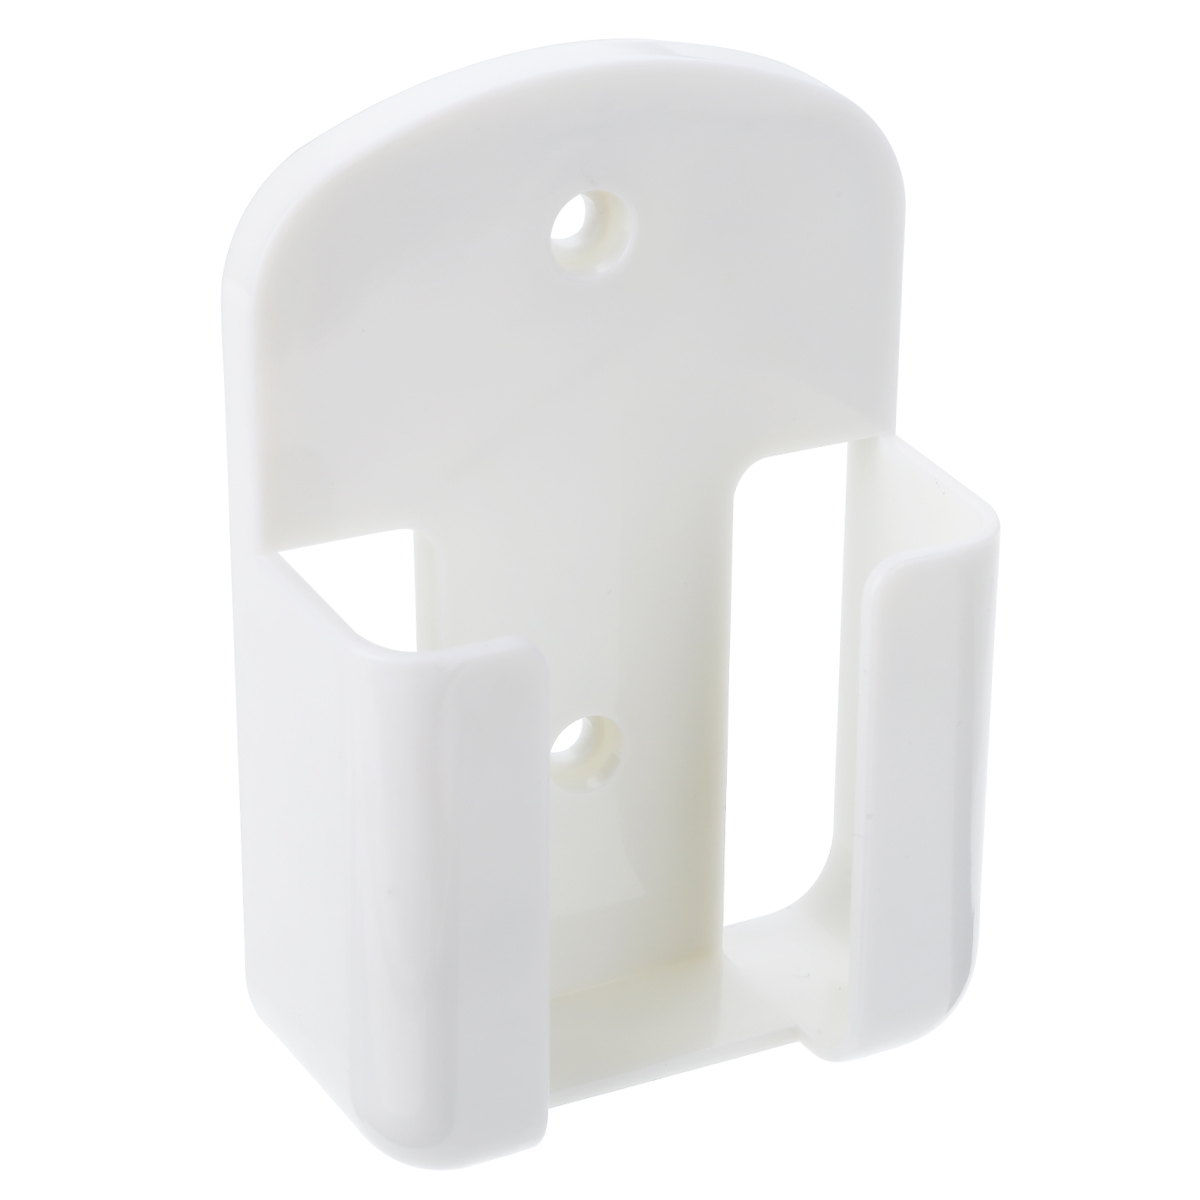 Hanging <font><b>Air</b></font> <font><b>Conditioner</b></font> <font><b>Remote</b></font> Control <font><b>Holder</b></font> Wall Mounted Box ABS Storage Rack Home Storage Accessories image